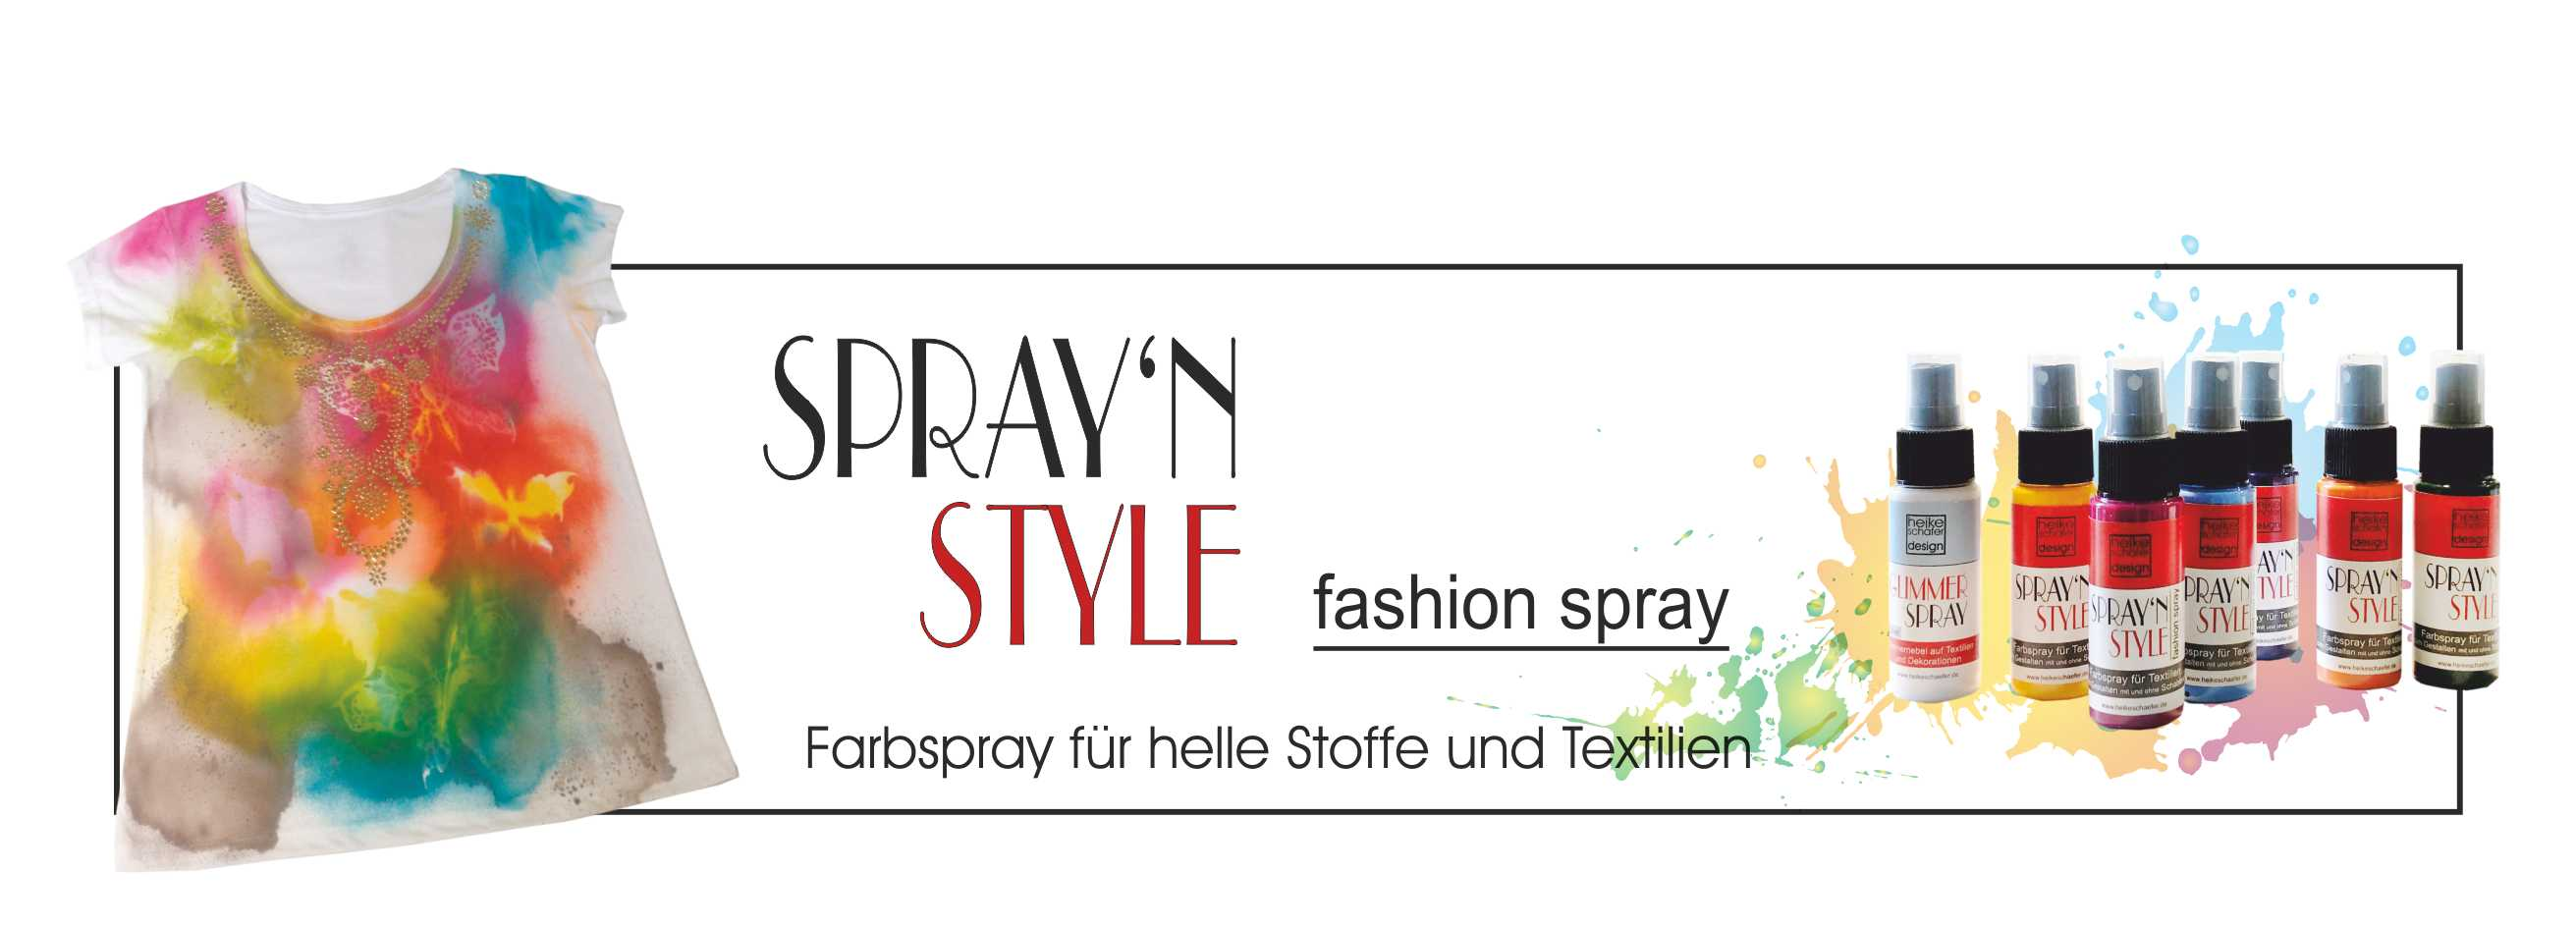 Textilspray - Fashion Spray